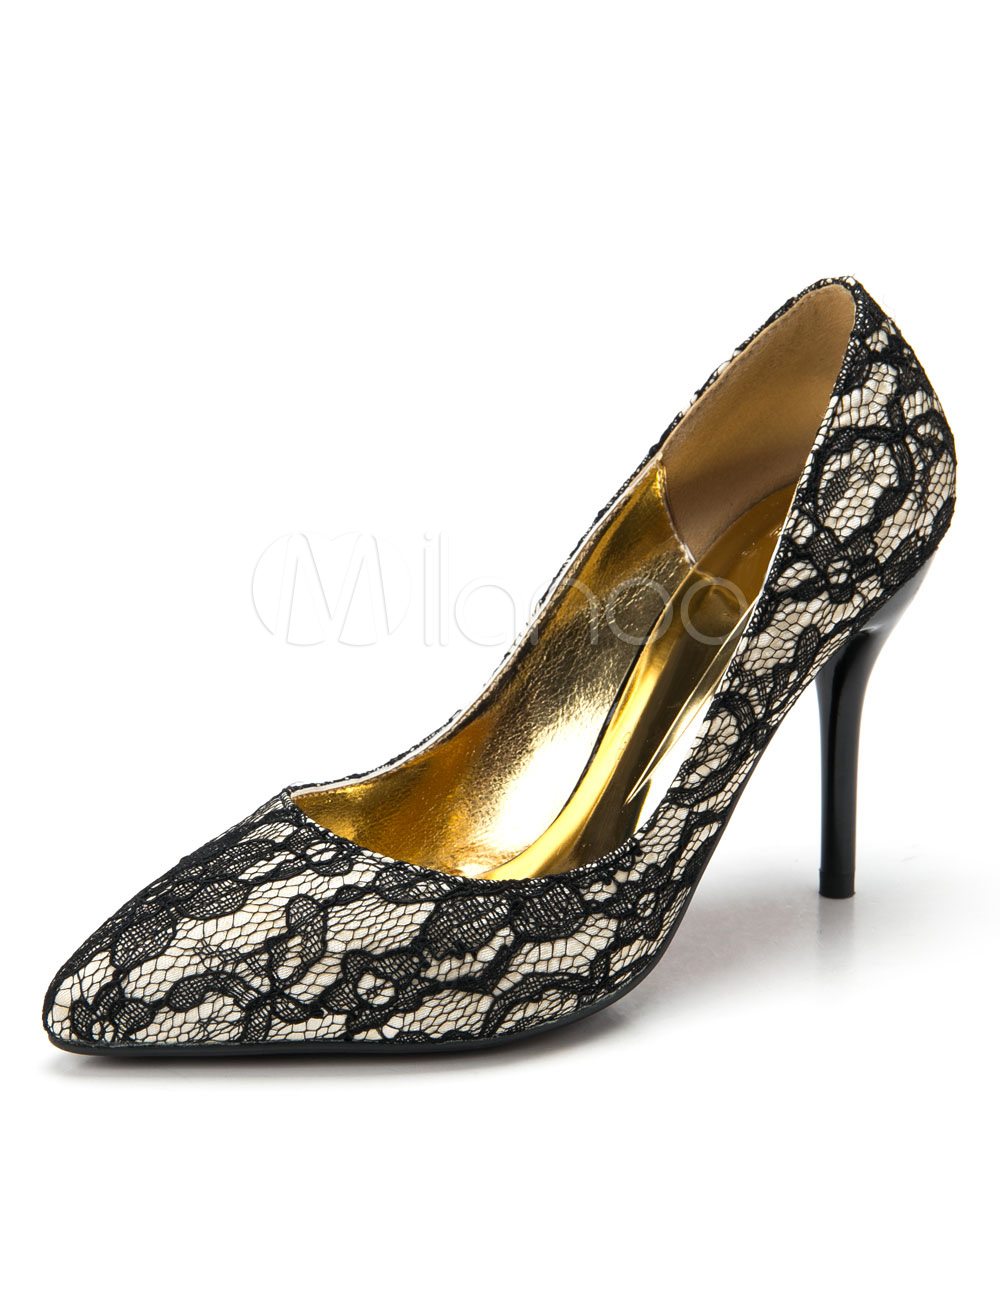 Black Wedding Shoes Lace Pointed Women's High Heel Bridal Shoes